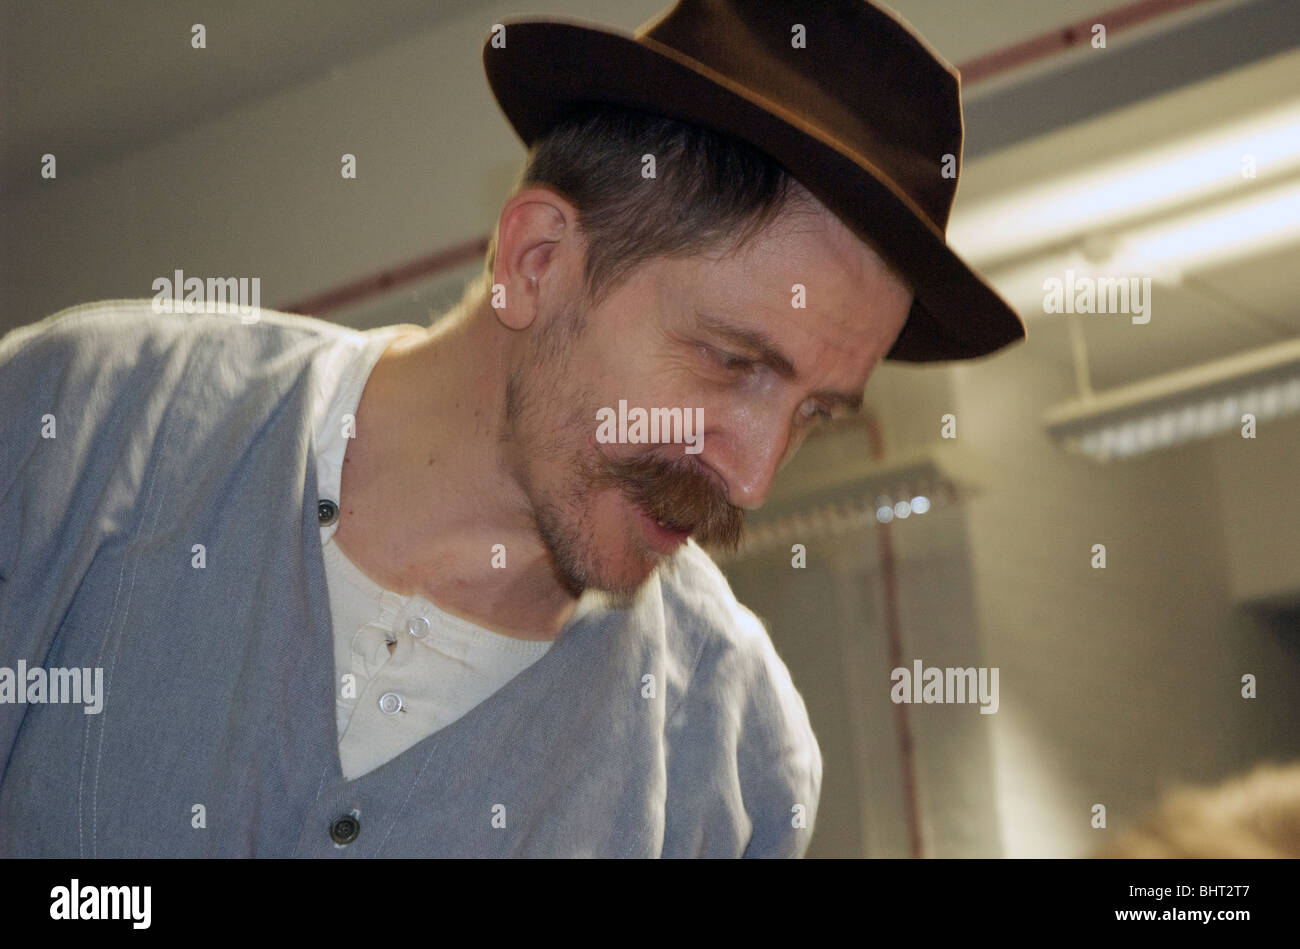 Billy The Artist Stock Photos Billy The Artist Stock Images Alamy